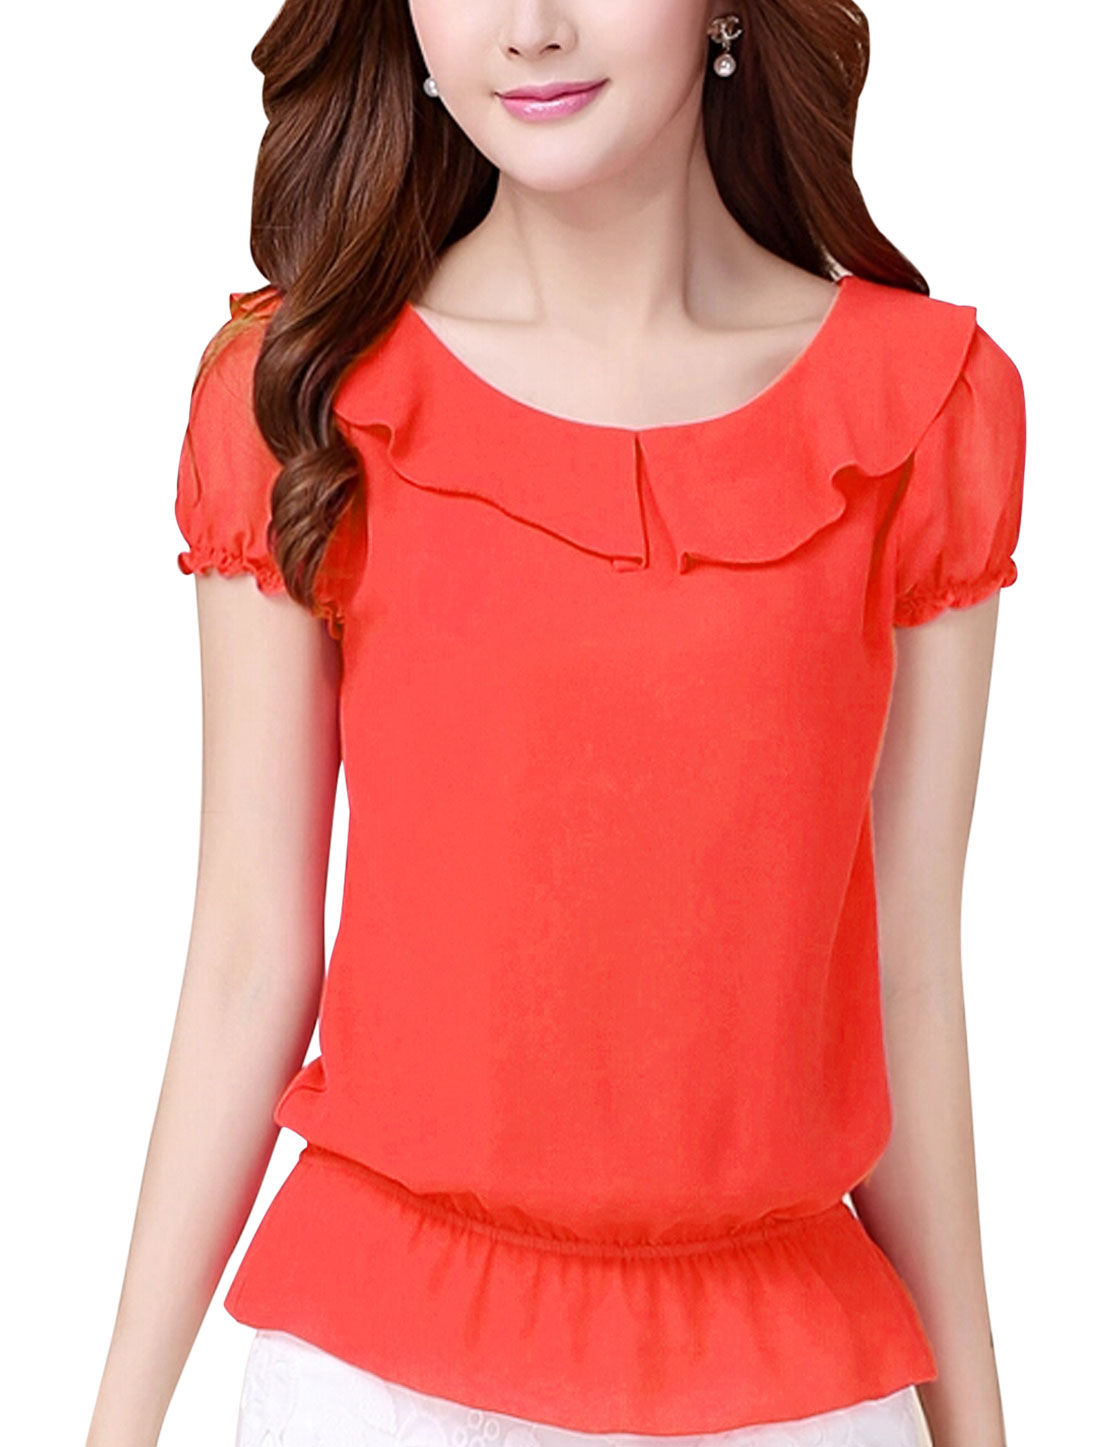 Lady Peter Pan Collar Cozy Fit Chiffon Top Coral S